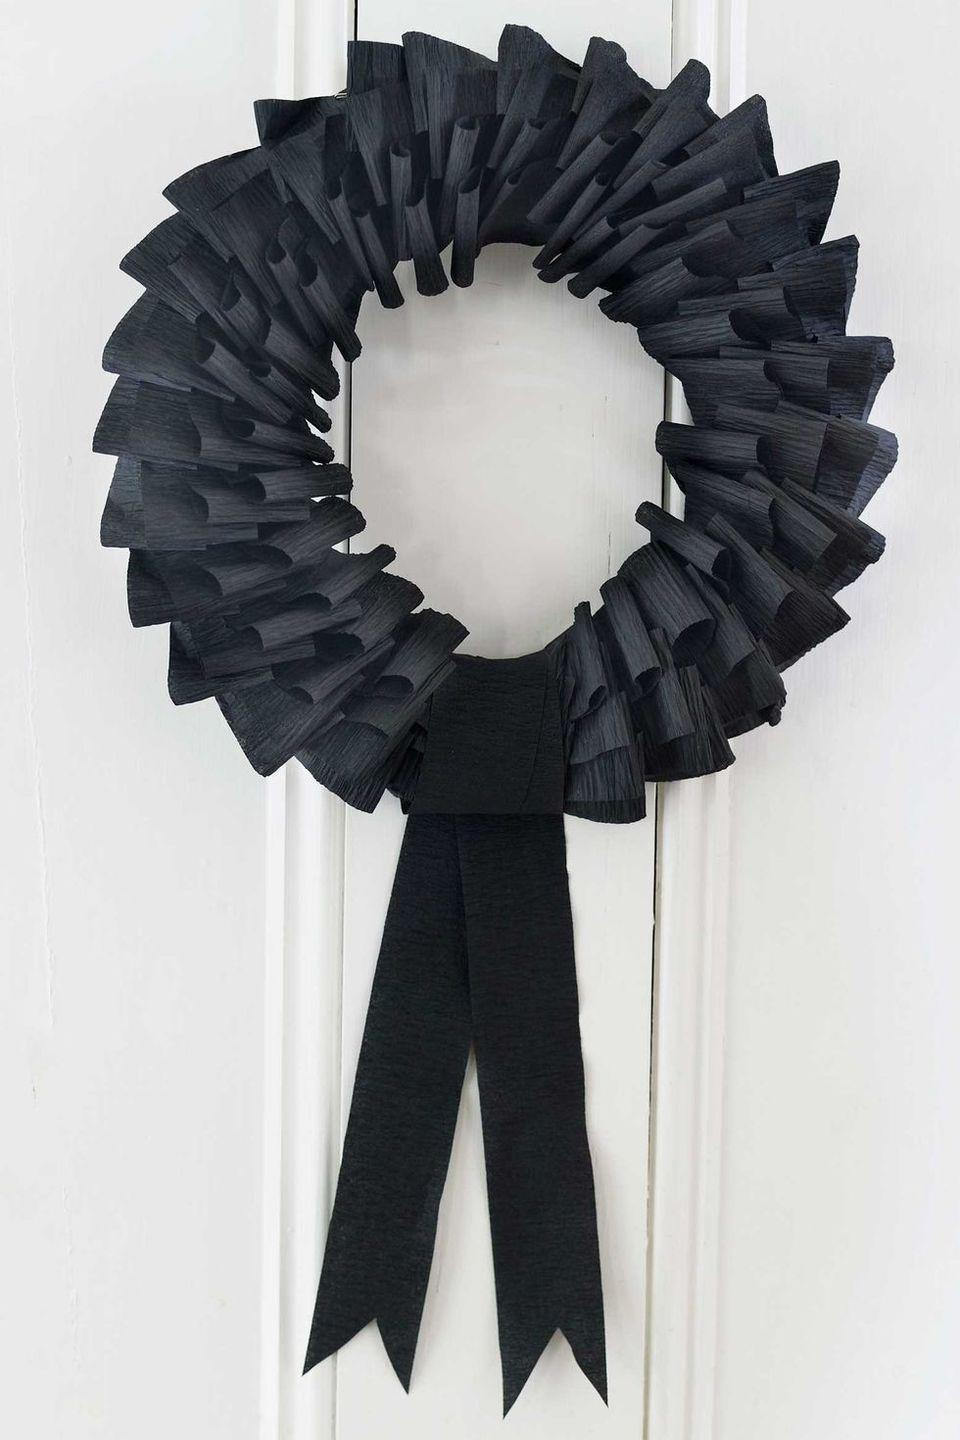 "<p>This eery wreath is as simple as folding black streamers around a foam wreath form. Once you make the basic wreath, you can decorate it with plastic spiders, bats, or whatever creepy crawlies you'd like. </p><p><a class=""link rapid-noclick-resp"" href=""https://www.amazon.com/Creative-Converting-076030-Streamer-500-Feet/dp/B00H2CVKMQ/?tag=syn-yahoo-20&ascsubtag=%5Bartid%7C10055.g.4602%5Bsrc%7Cyahoo-us"" rel=""nofollow noopener"" target=""_blank"" data-ylk=""slk:SHOP CREPE STREAMERS"">SHOP CREPE STREAMERS</a></p><p><em><a href=""https://www.countryliving.com/diy-crafts/how-to/g1026/how-to-make-a-paper-wreath-1010/"" rel=""nofollow noopener"" target=""_blank"" data-ylk=""slk:Get the tutorial at Country Living »"" class=""link rapid-noclick-resp"">Get the tutorial at Country Living <em>»</em></a></em></p>"